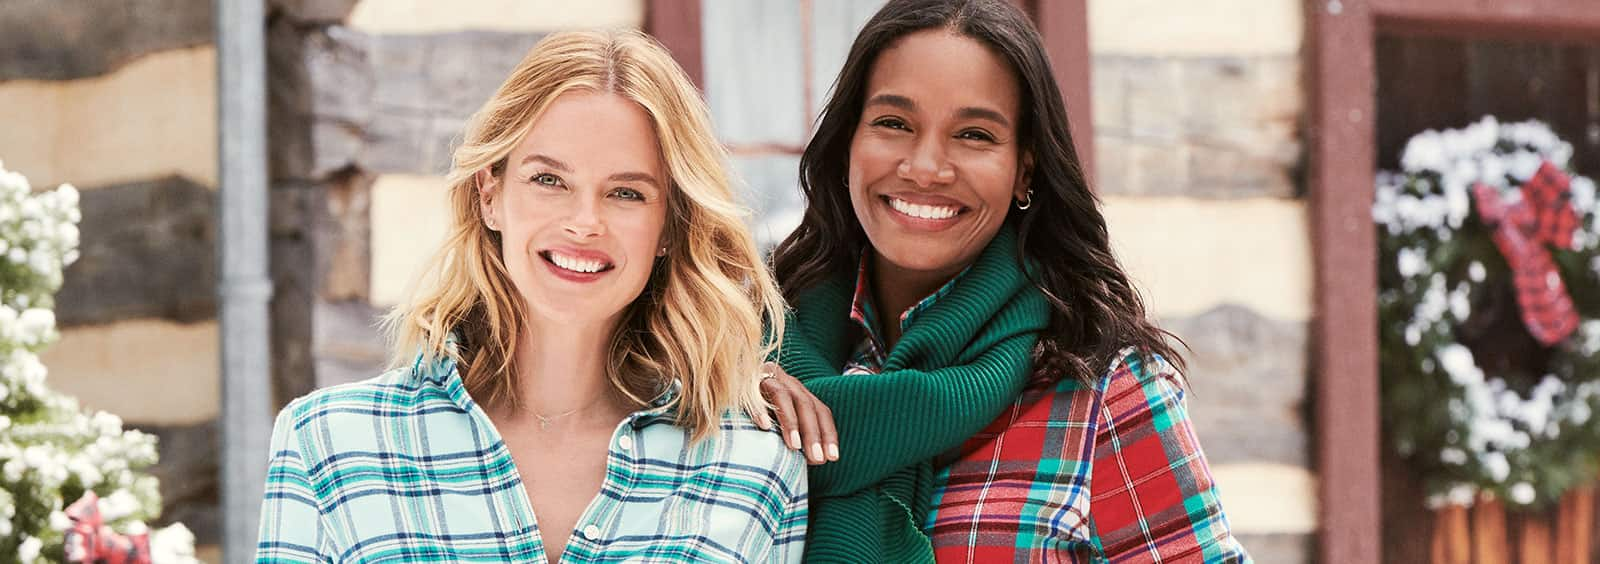 Tips on Styling Your Fave Flannel Shirts | Lands' End